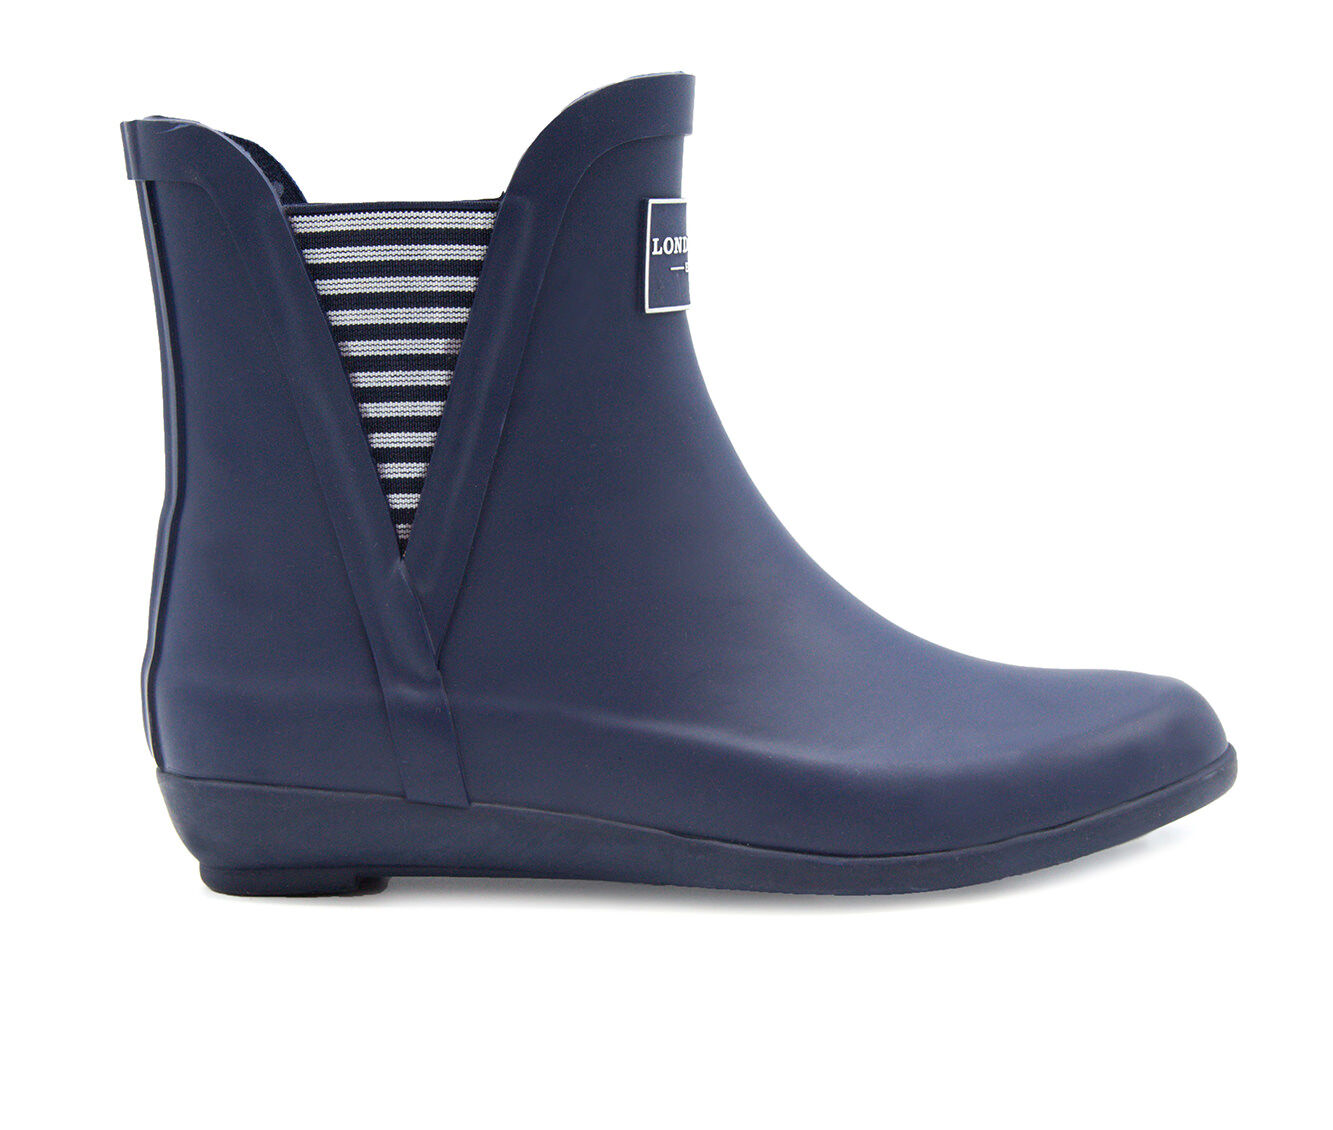 purchase new arrivals Women's London Fog Piccadilly Rain Boots Navy